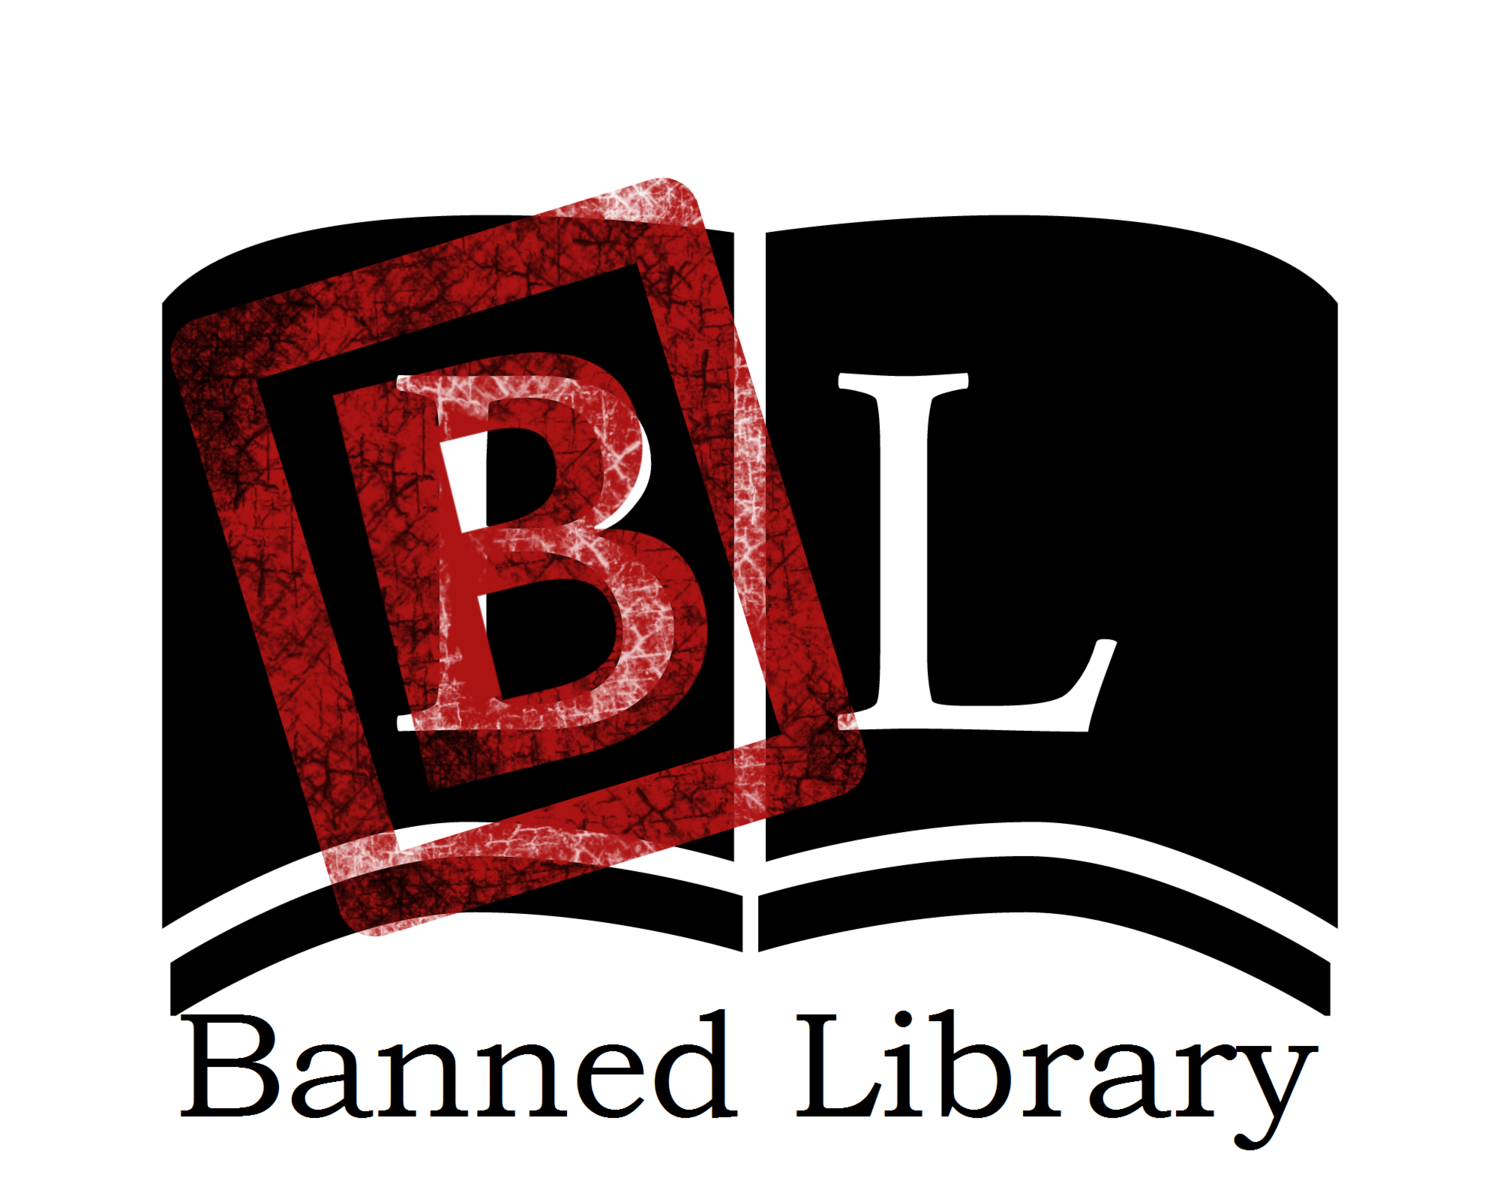 Banned Library